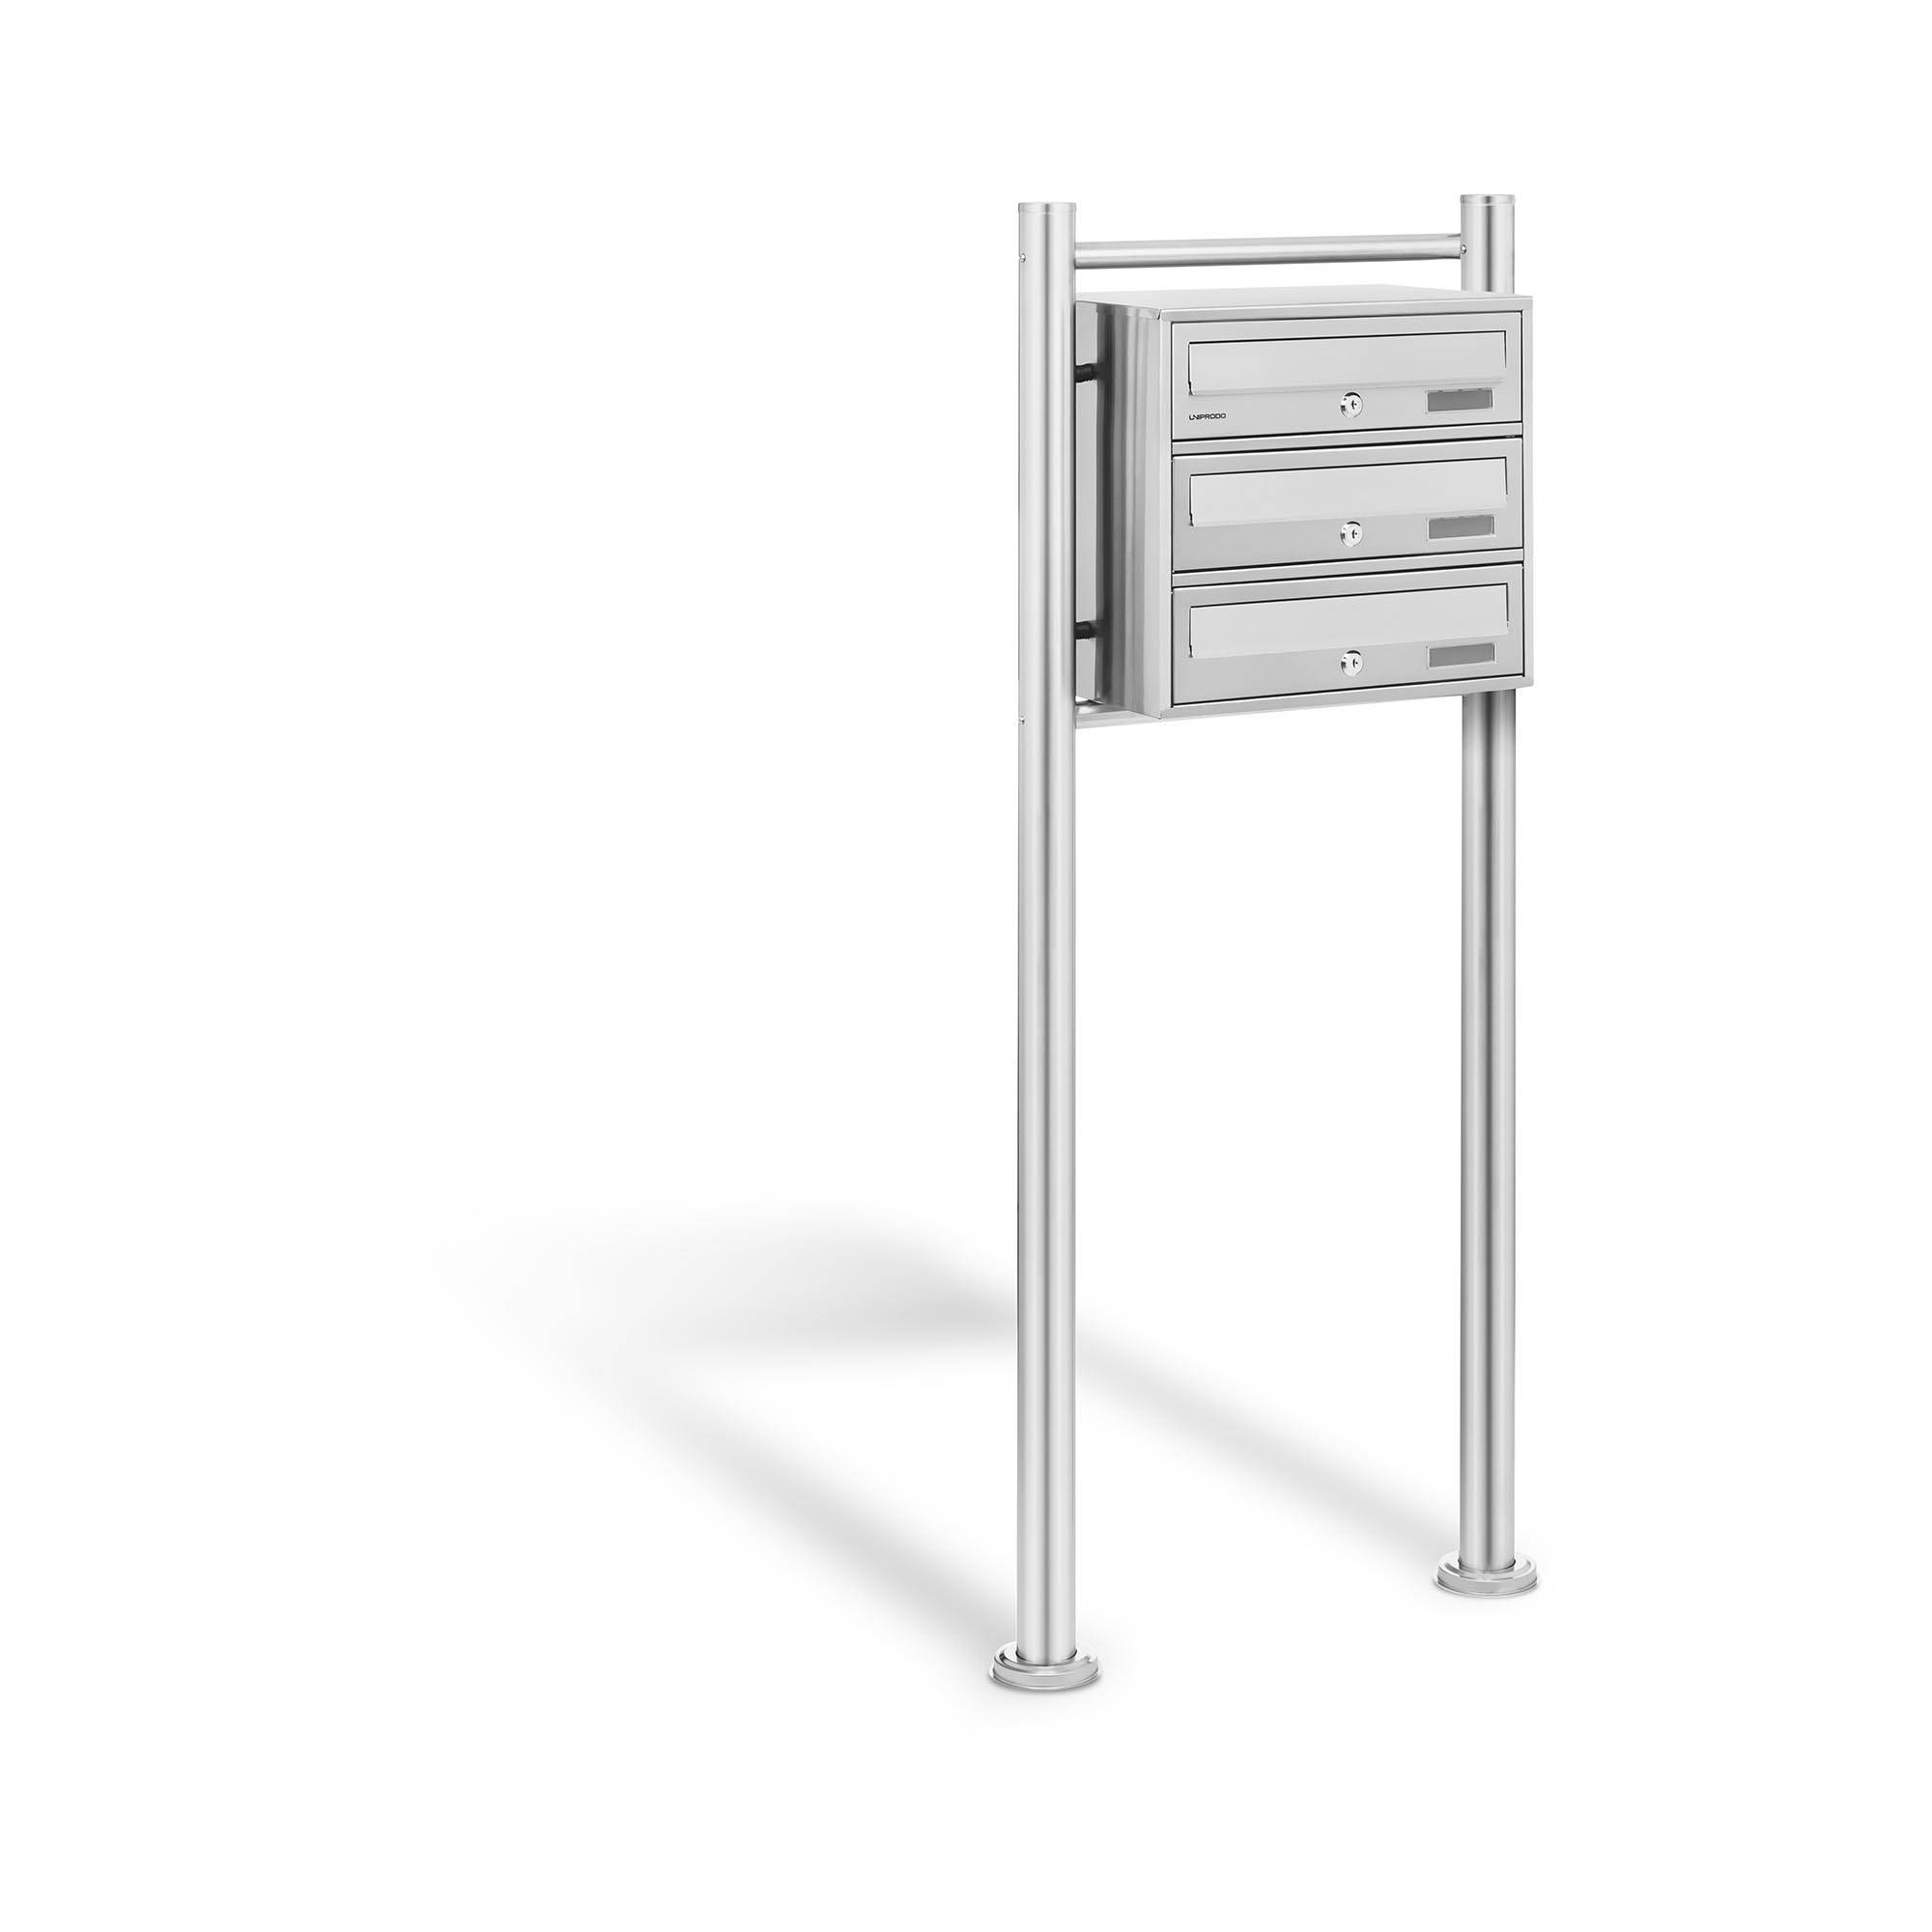 Uniprodo Stainless Steel Postbox - 3 Mailboxes UNI_LETTER_01